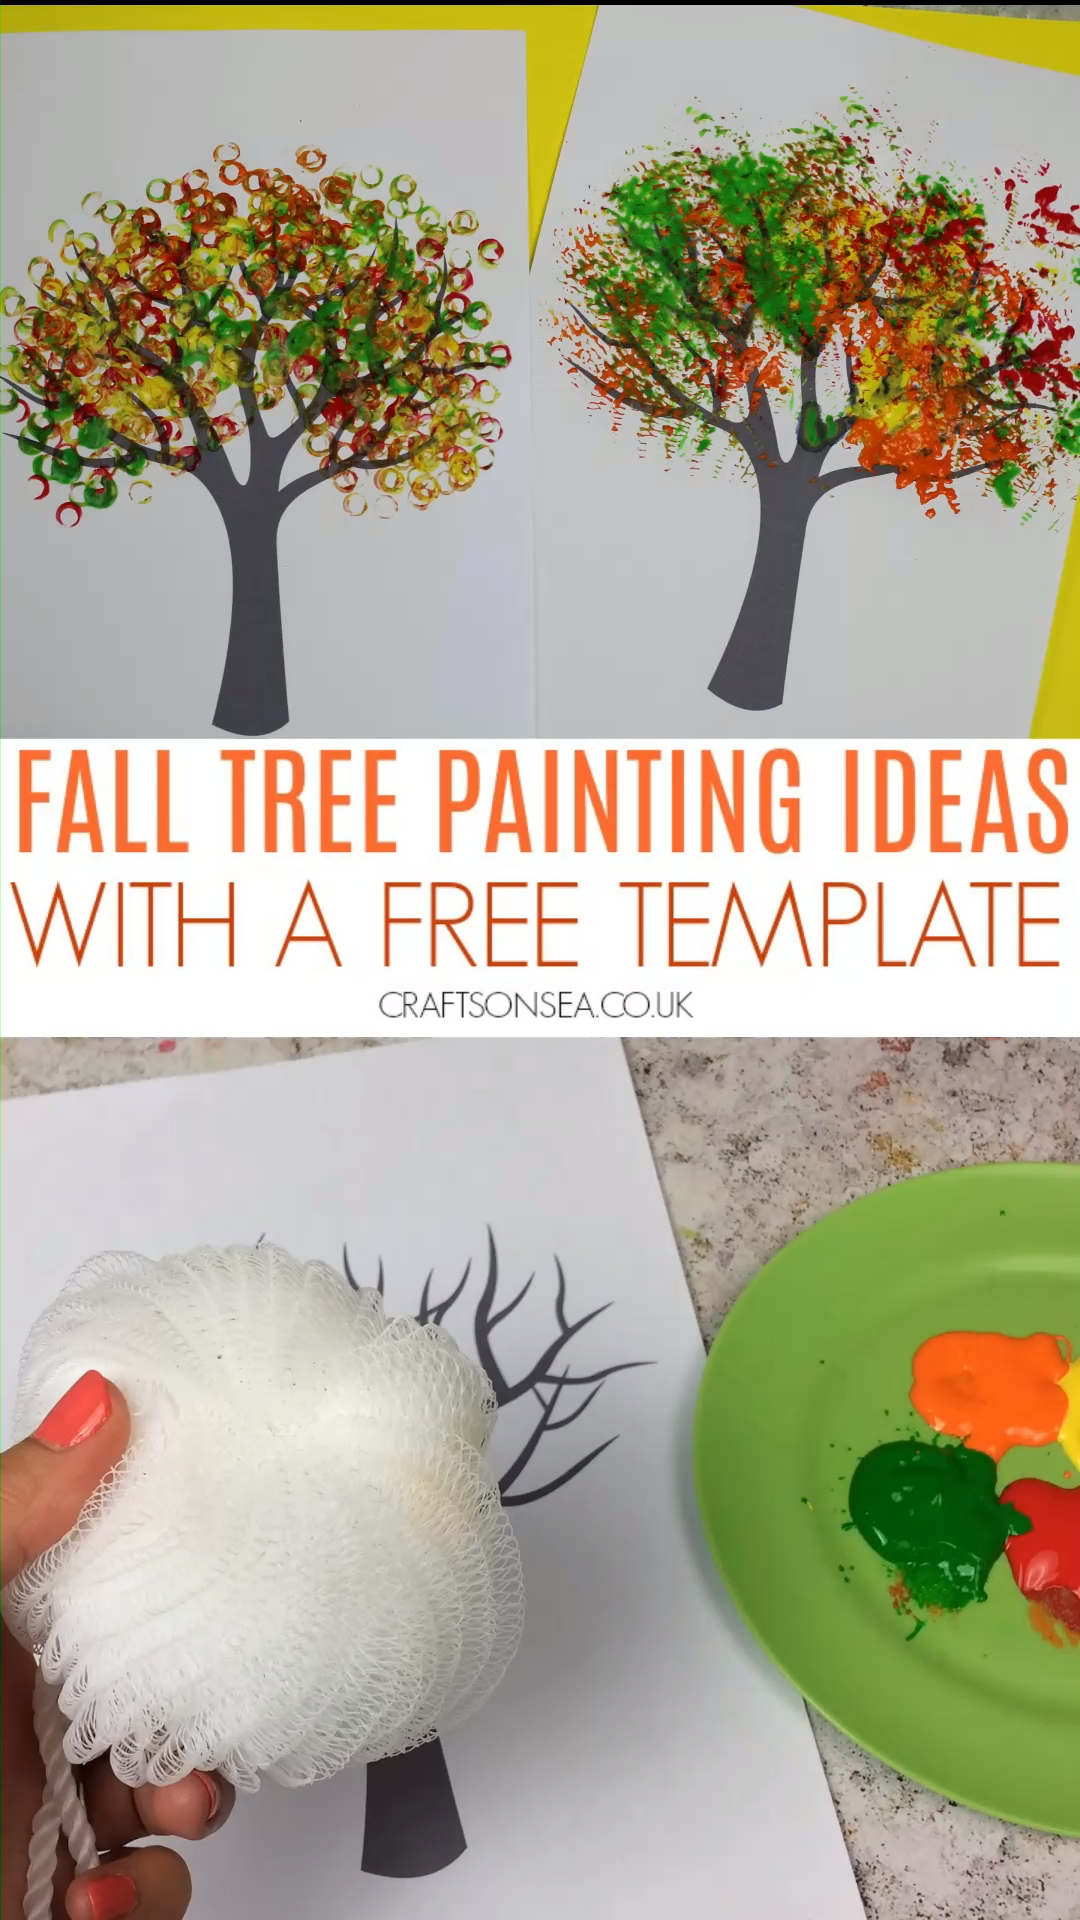 Autumn Tree Painting Ideas For Kids Video Video Fall Tree Painting Fall Crafts For Kids Tree Painting